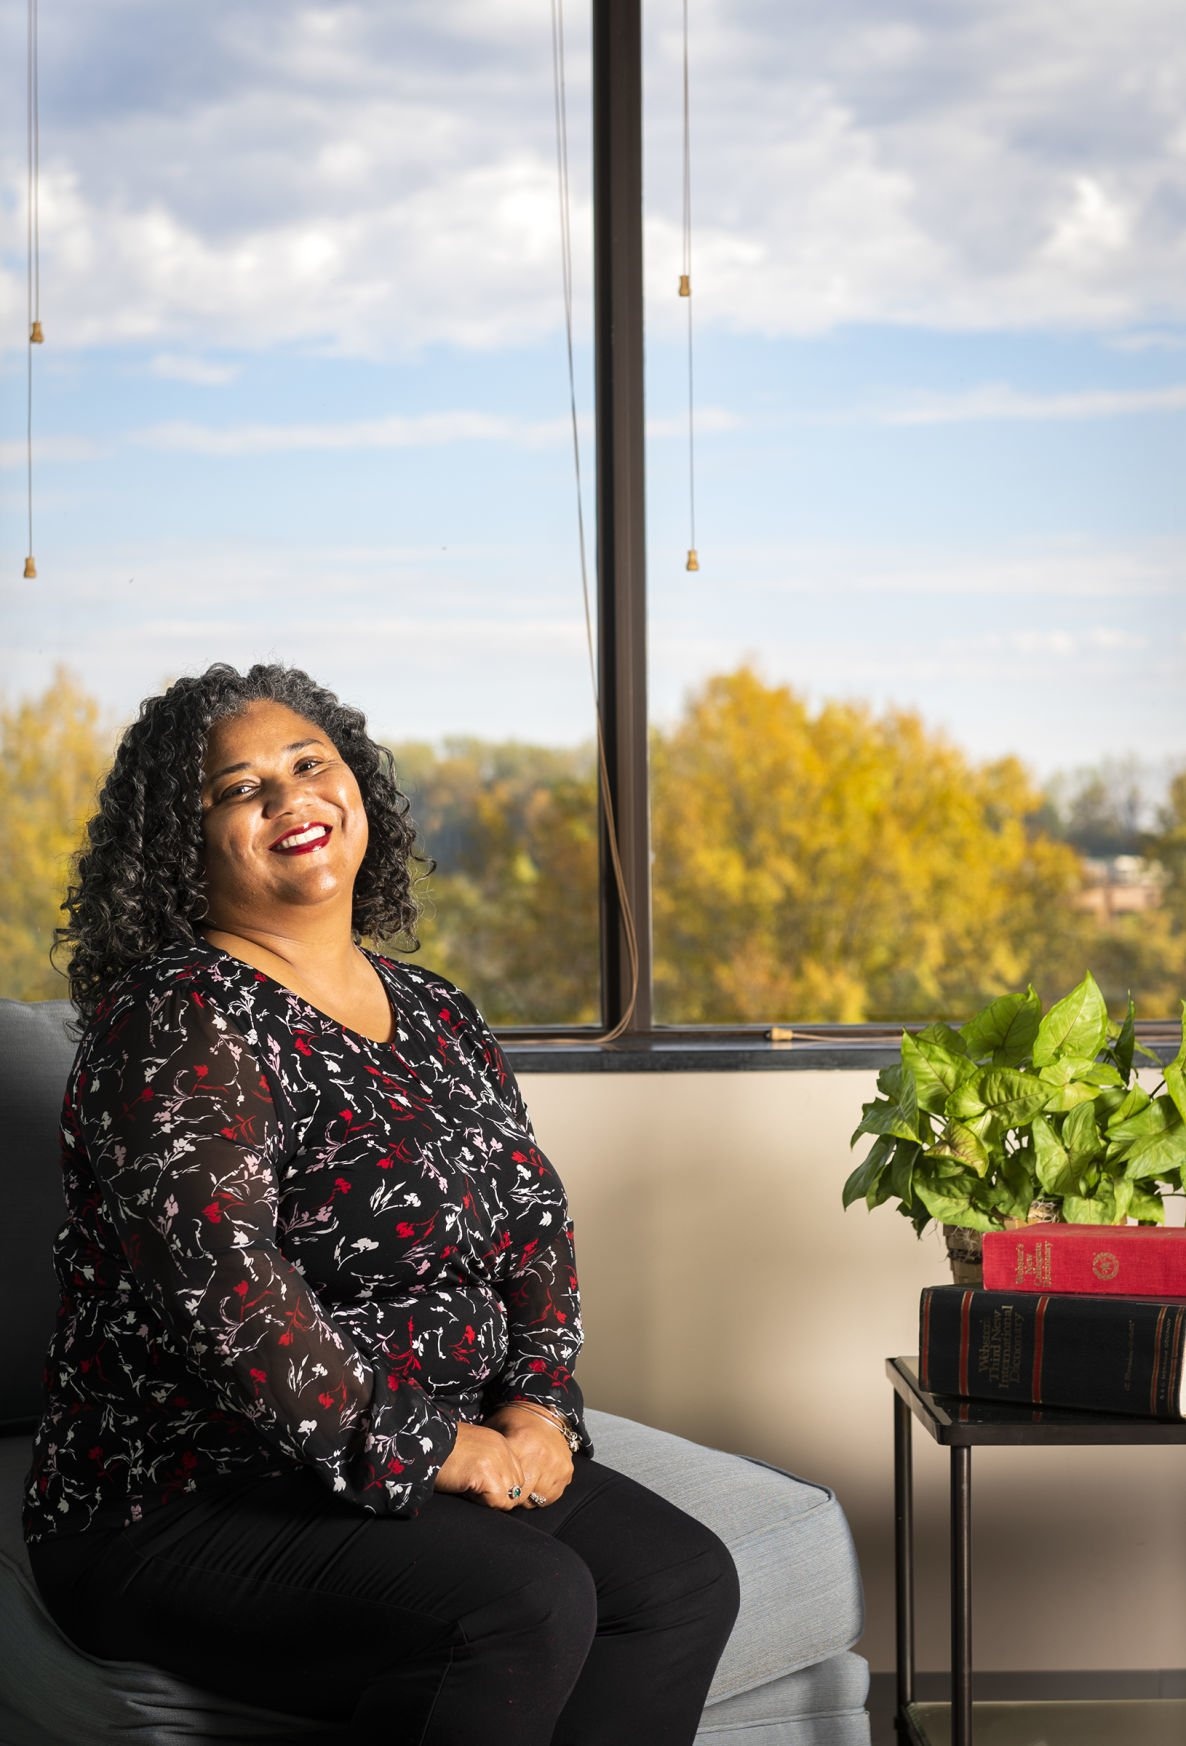 Effie McMillian, Executive Director of Equity Access and Acceleration